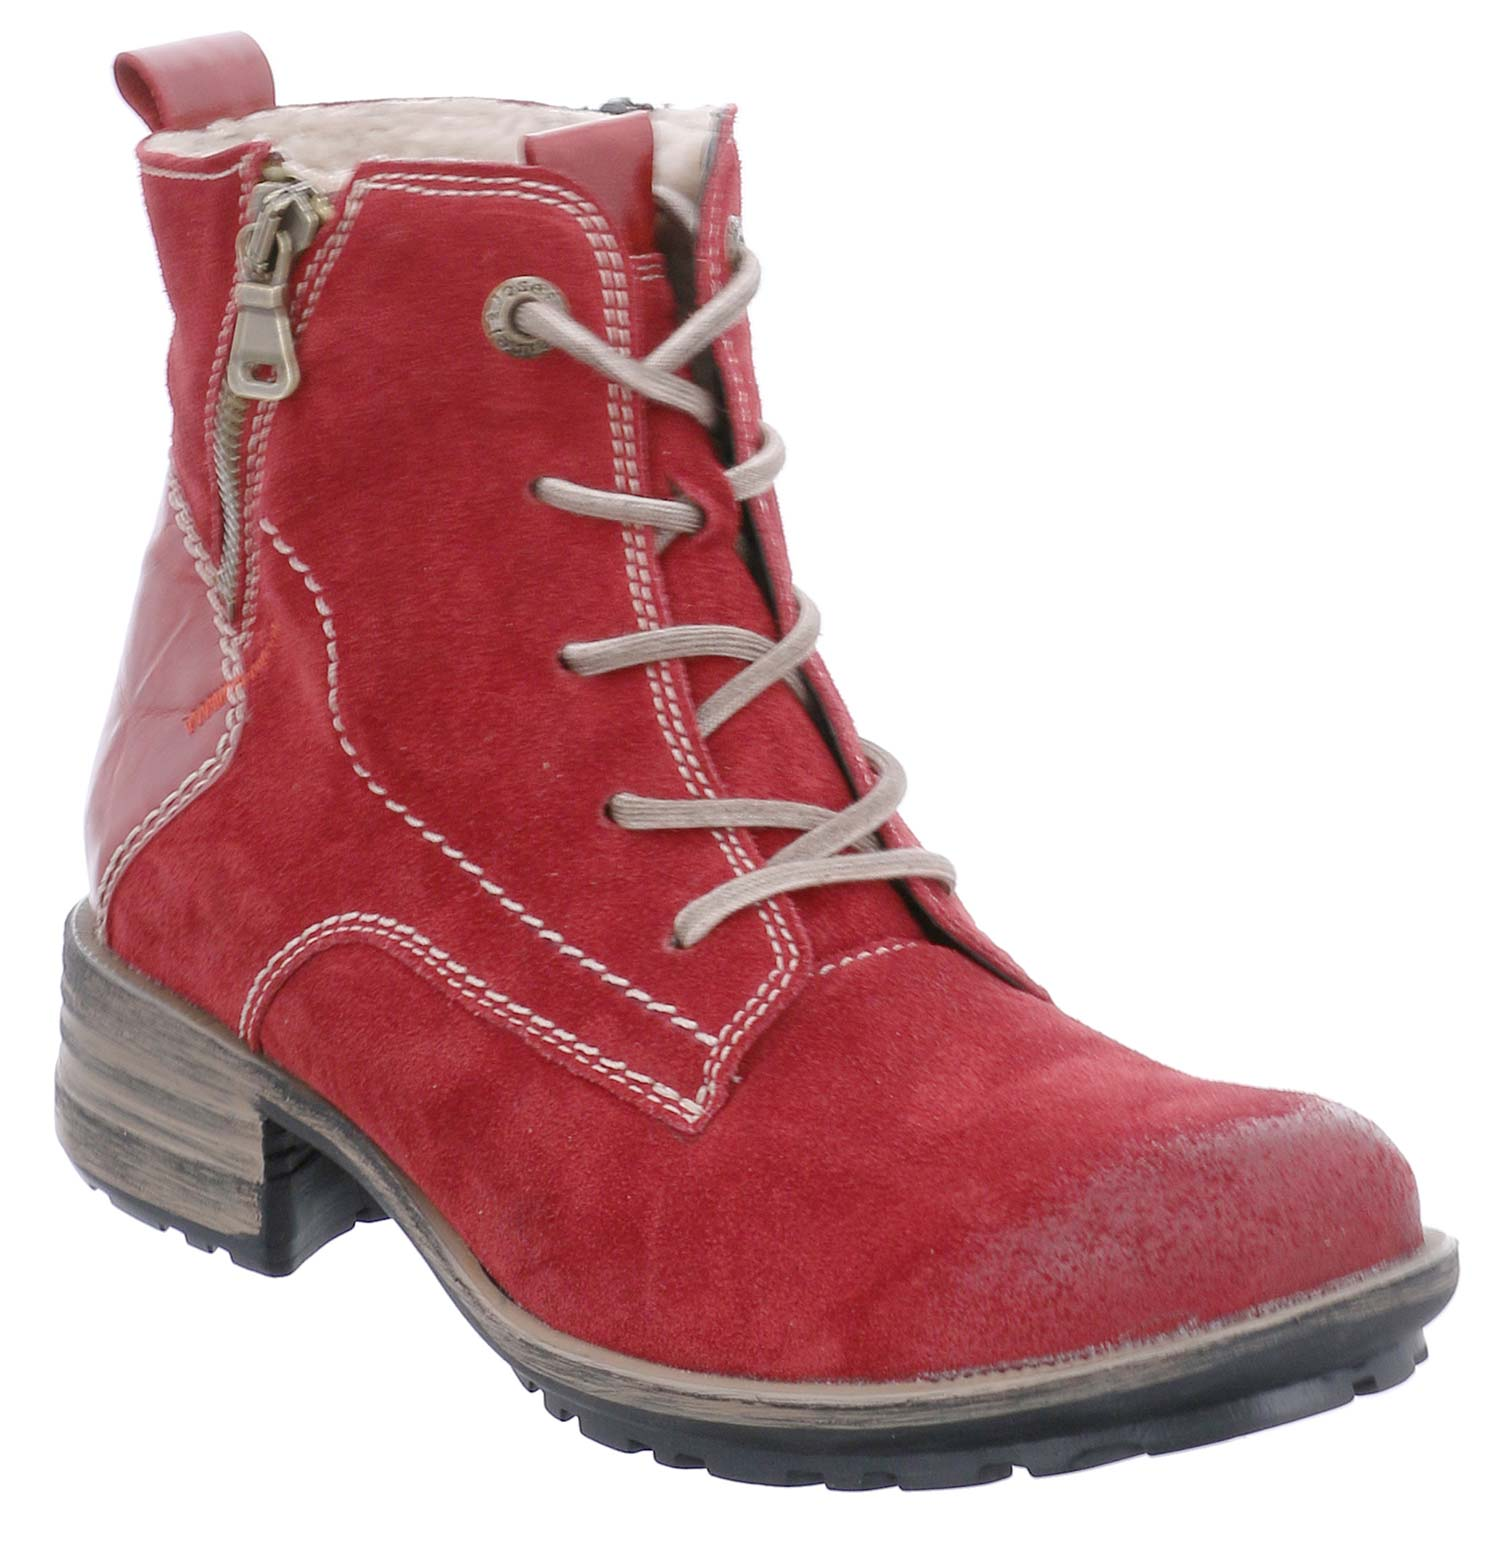 Josef Seibel Sandra Ladies Winter shoes Boots 93897pl949 400 Red New